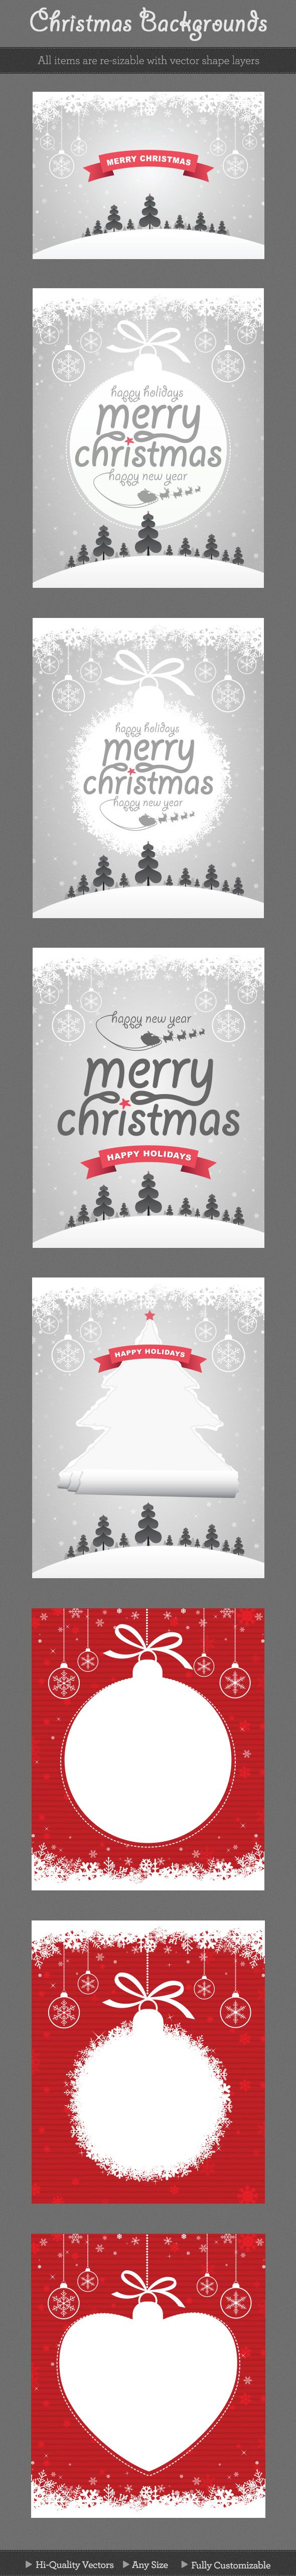 Christmas posters, backgrounds and snow globe design. #illustration #vector #poster #flyer #psd #christmas #ornaments